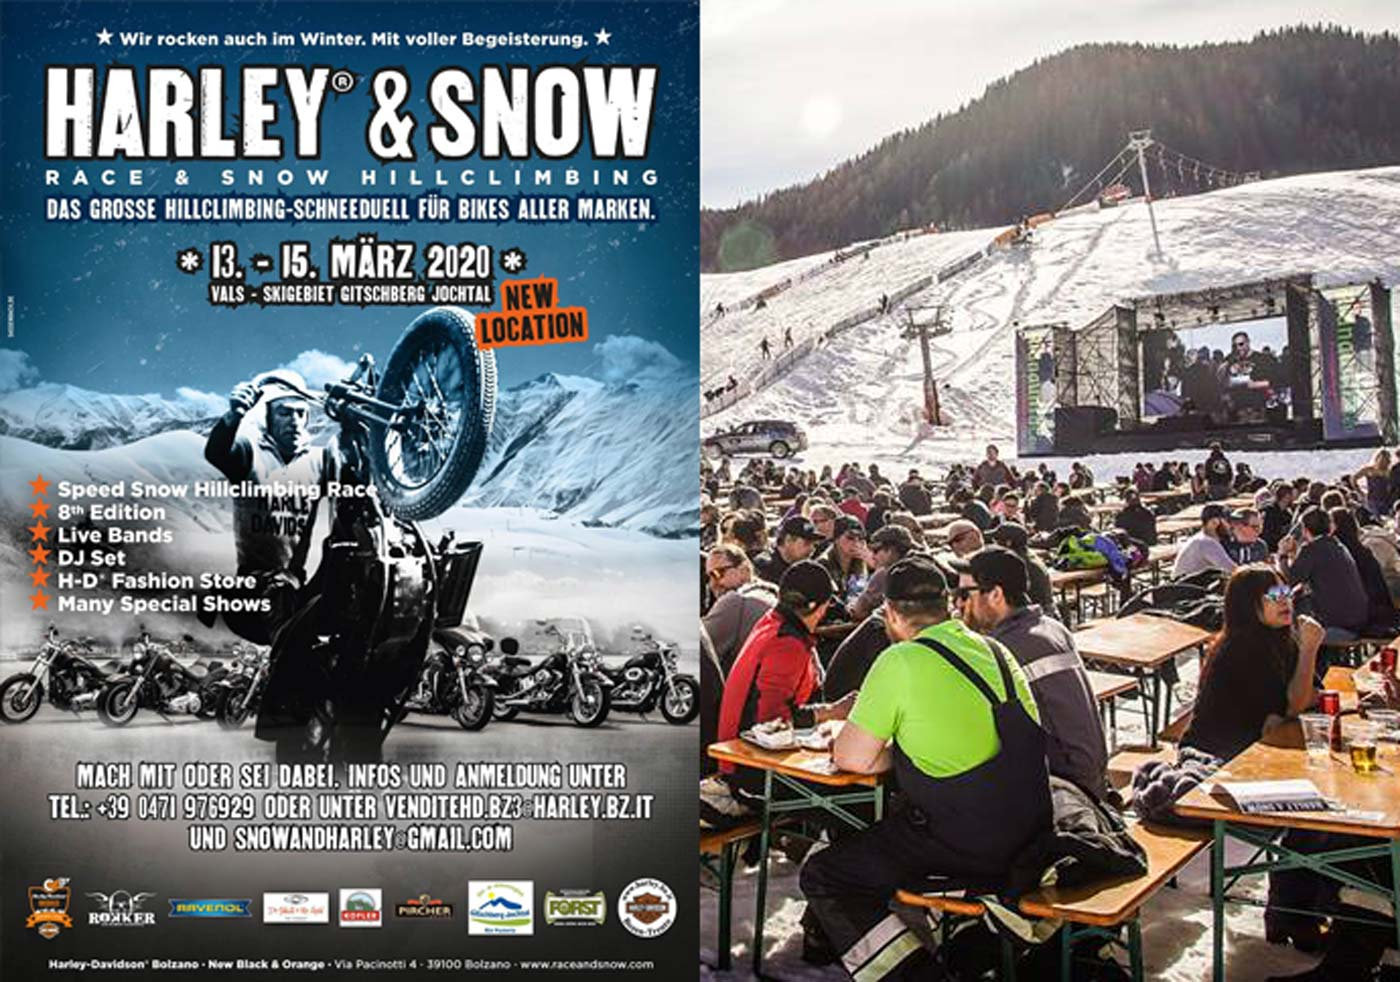 Plakat Harley and Snow 2020 in Südtirol